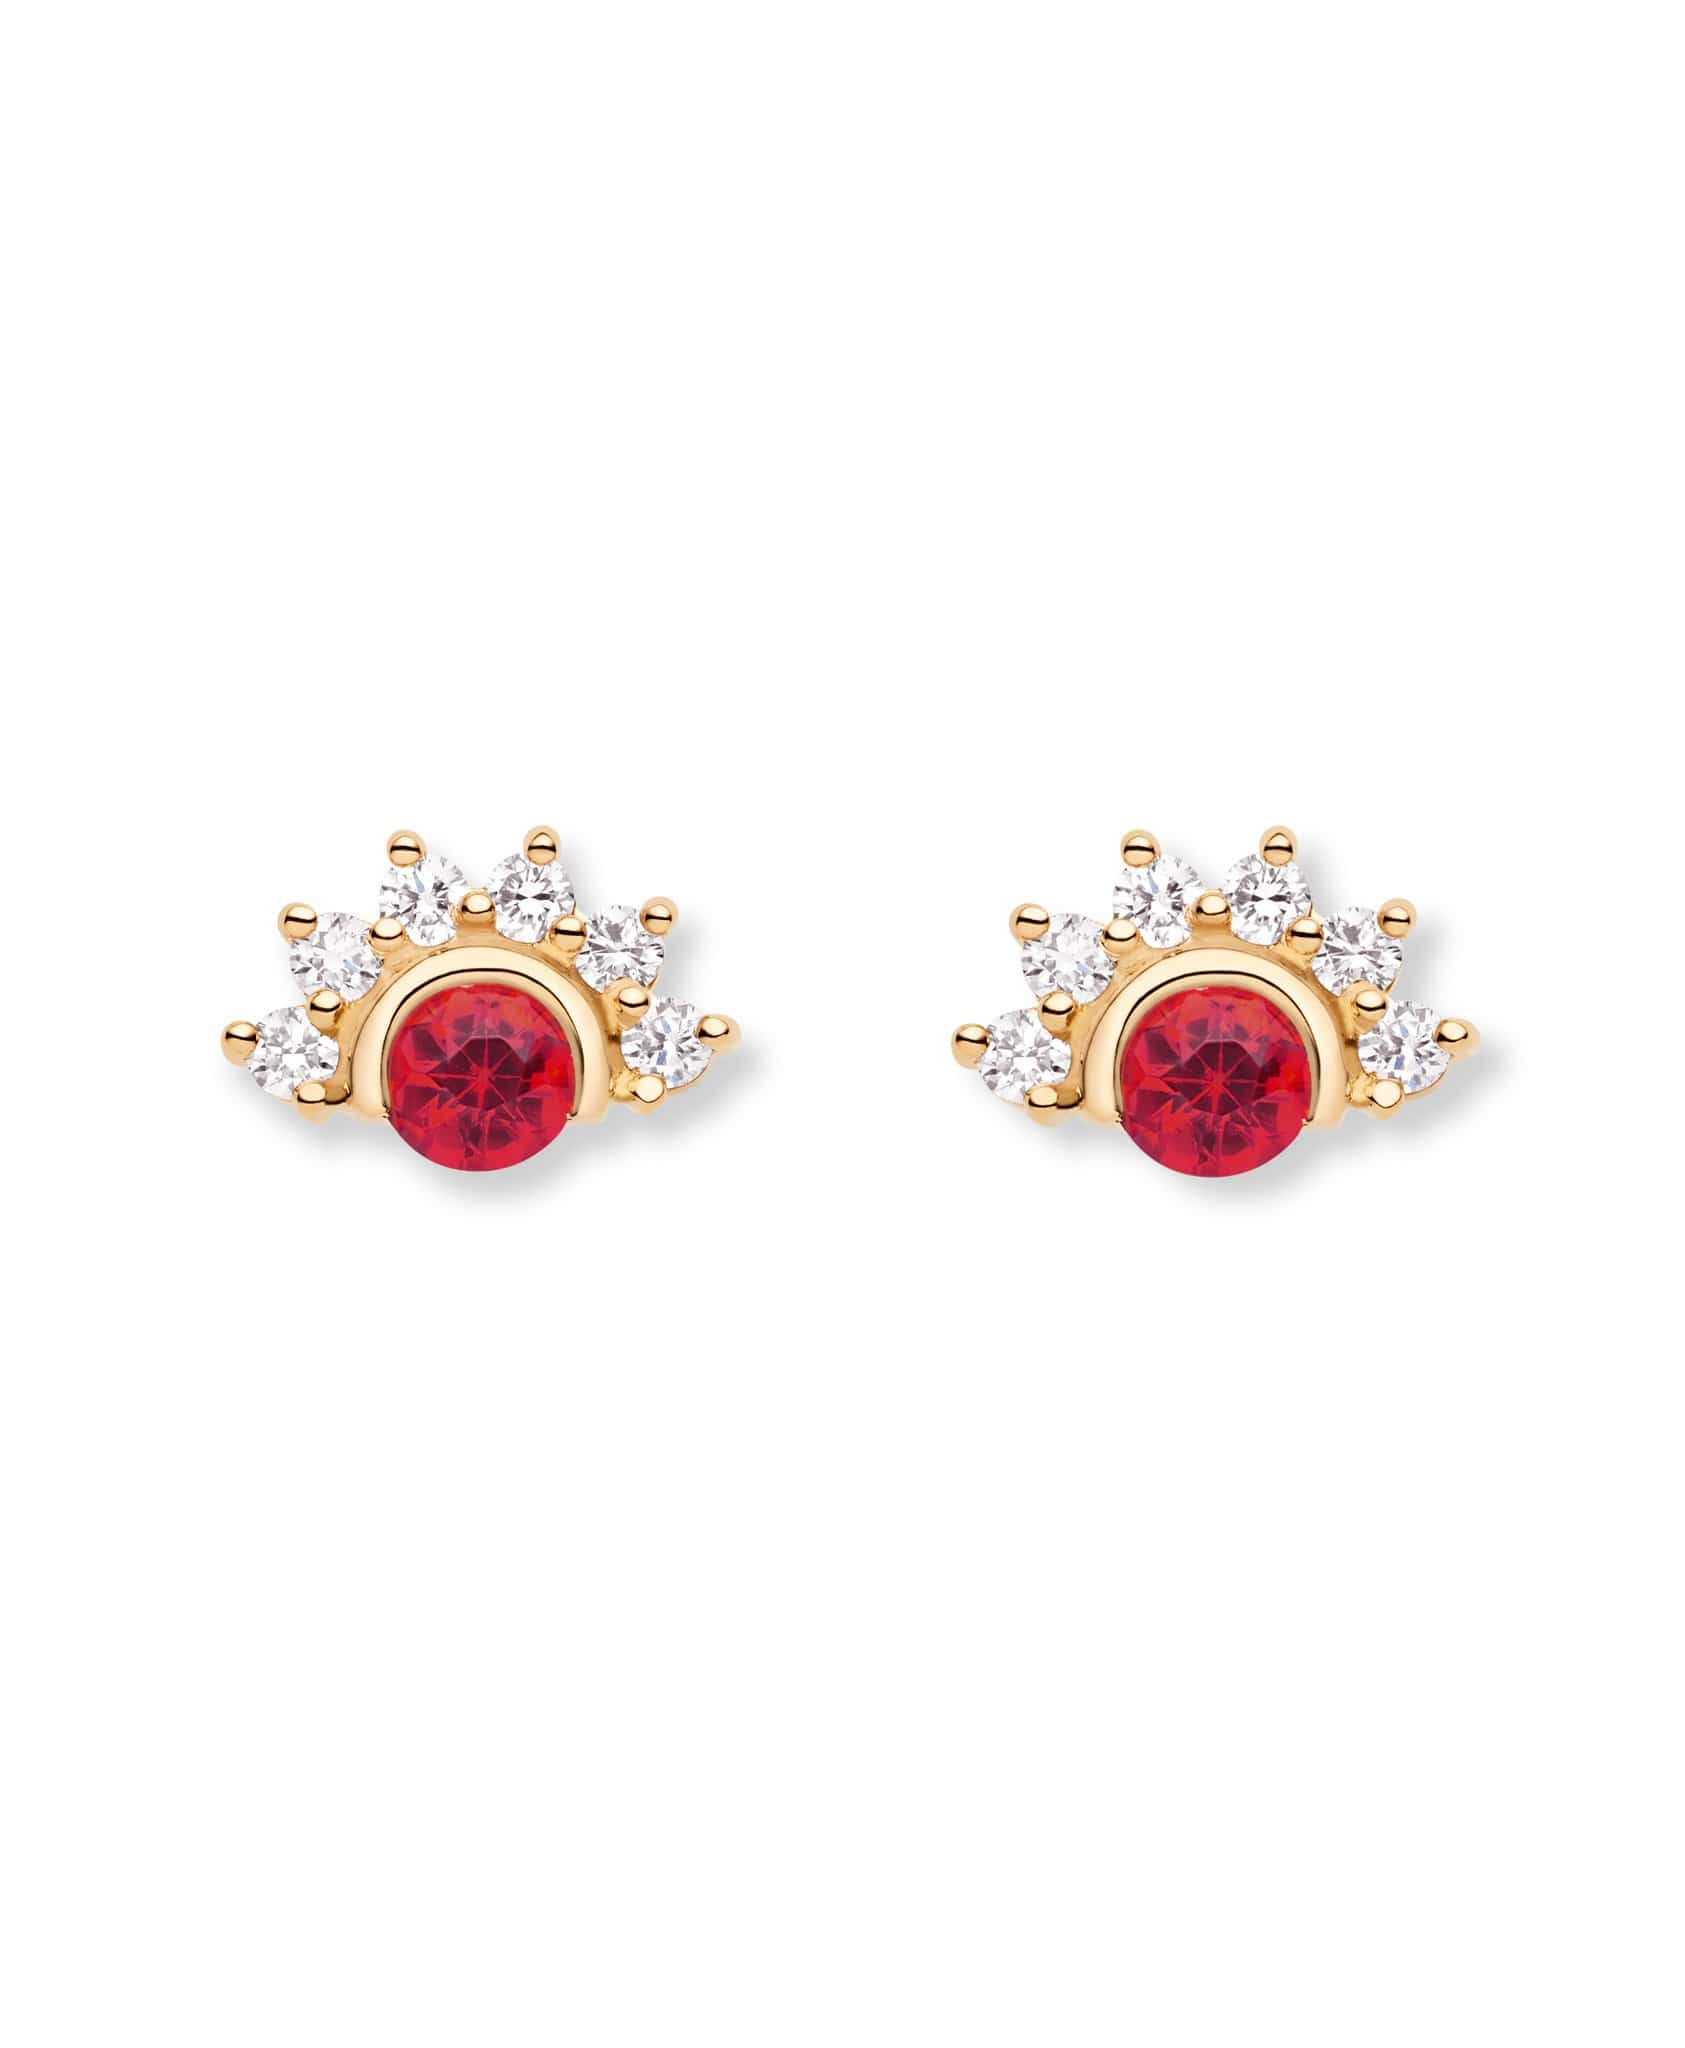 Red Spinel Studs - Nouvel Heritage